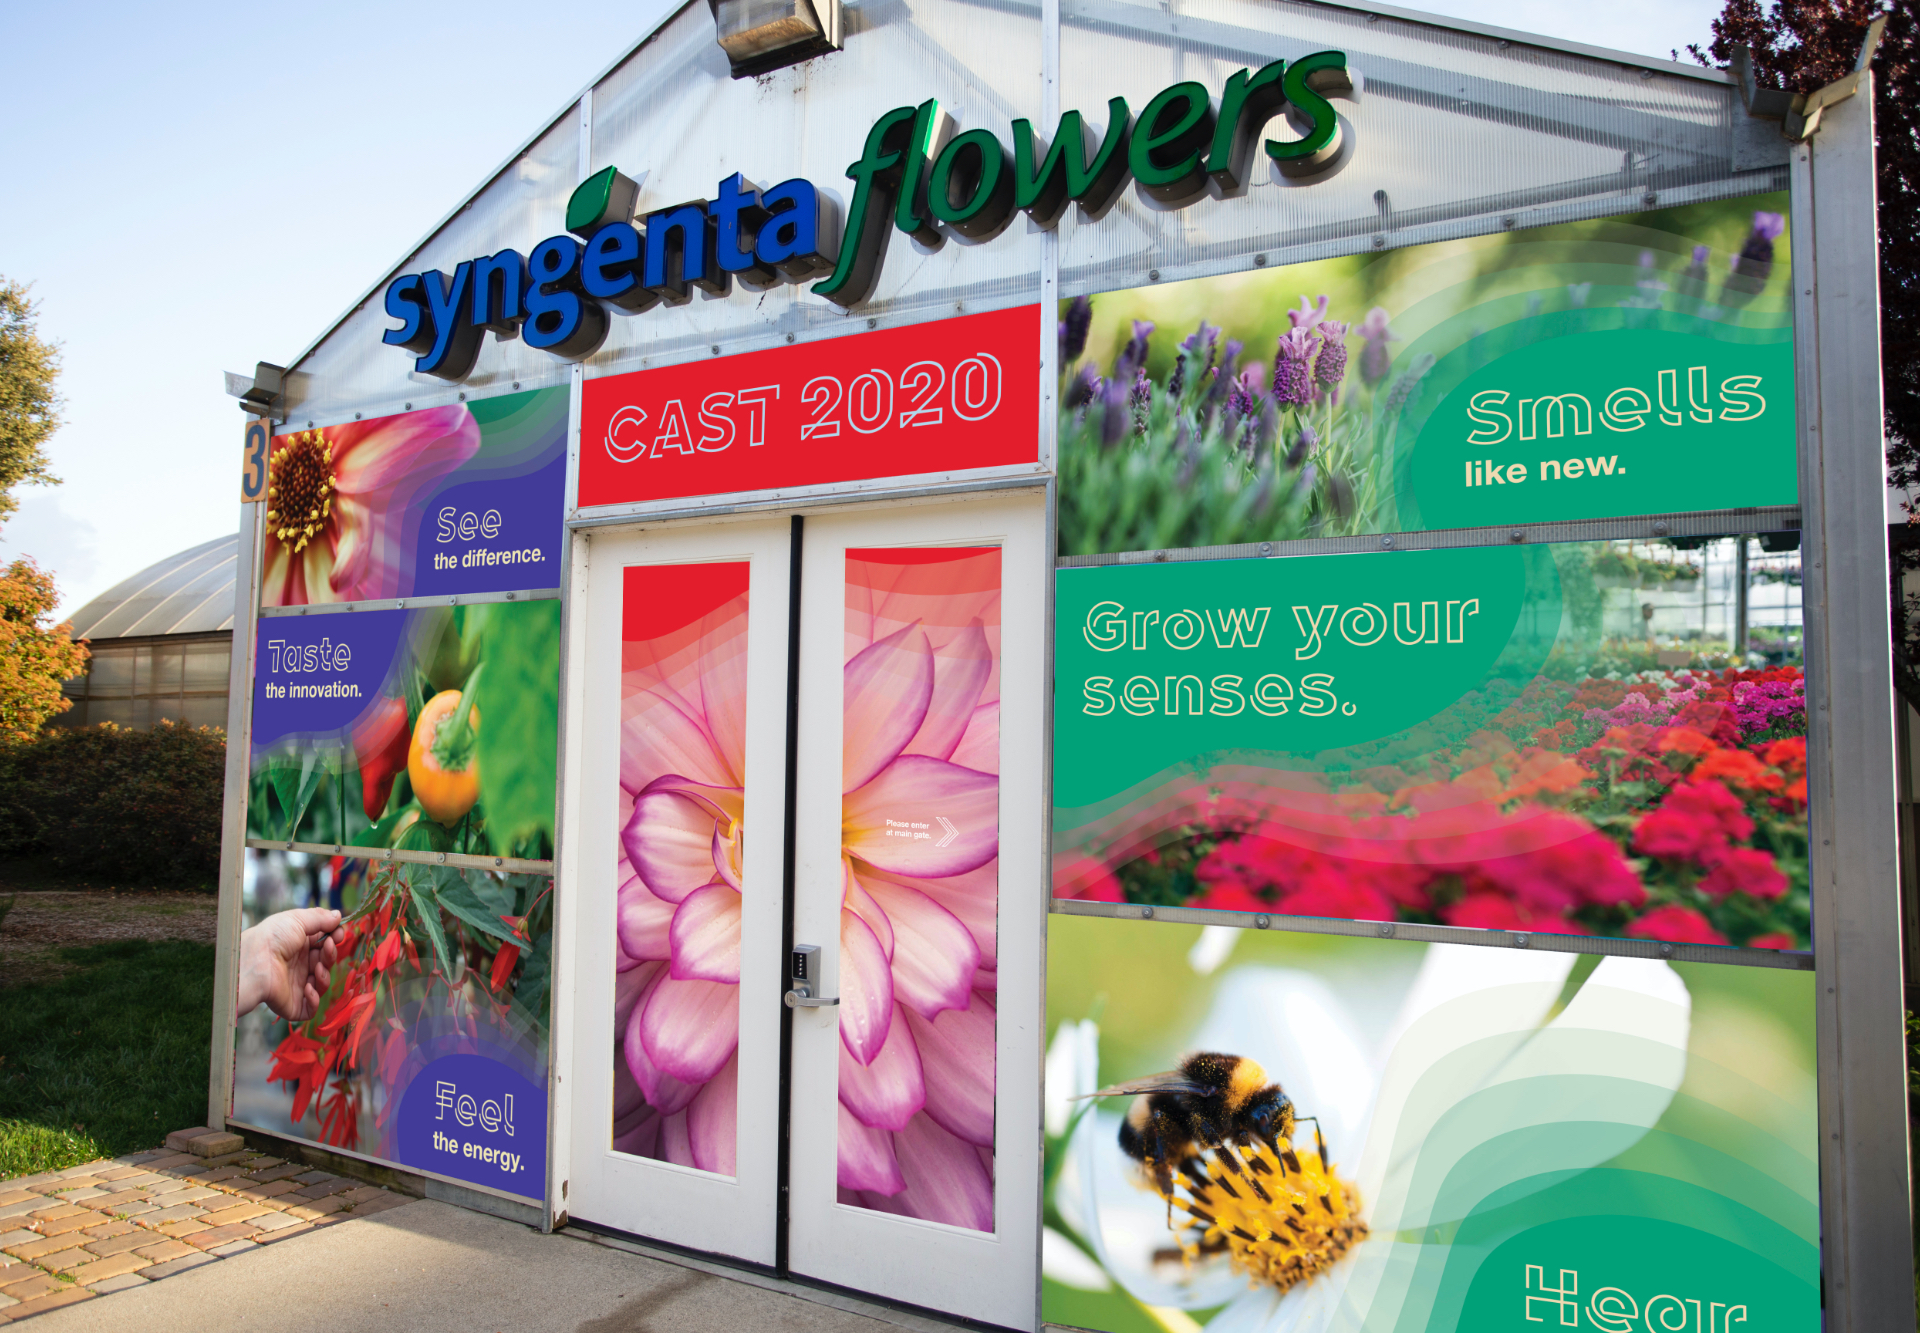 Syngenta Flowers greenhouse decorated for 2020 cast event